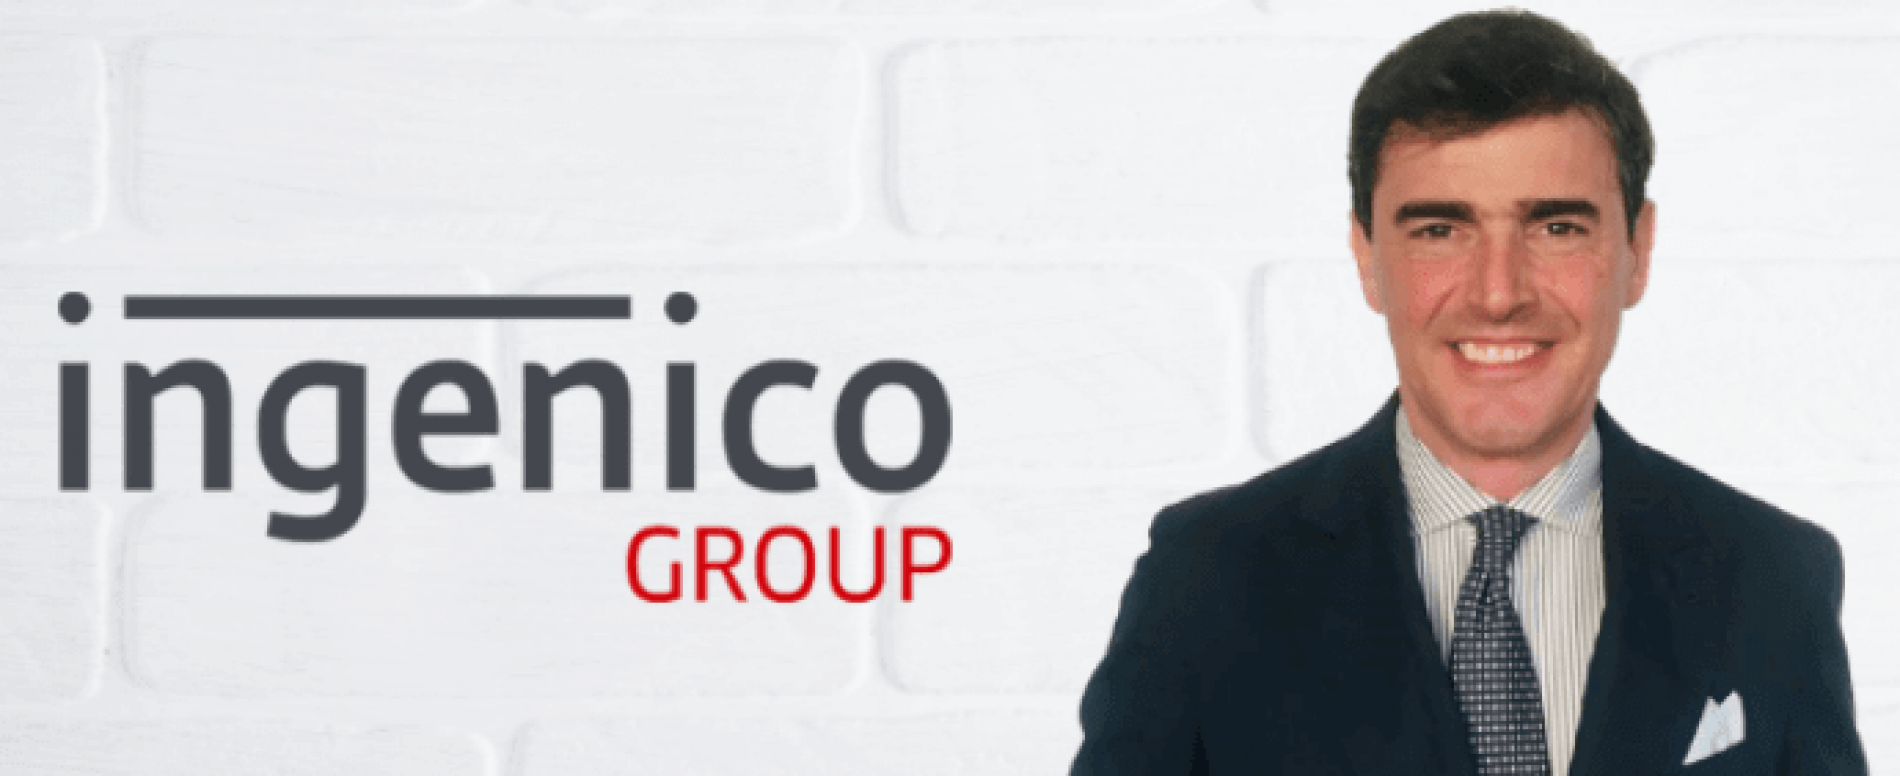 Dario Scacchetti, new entry in Ingenico Group